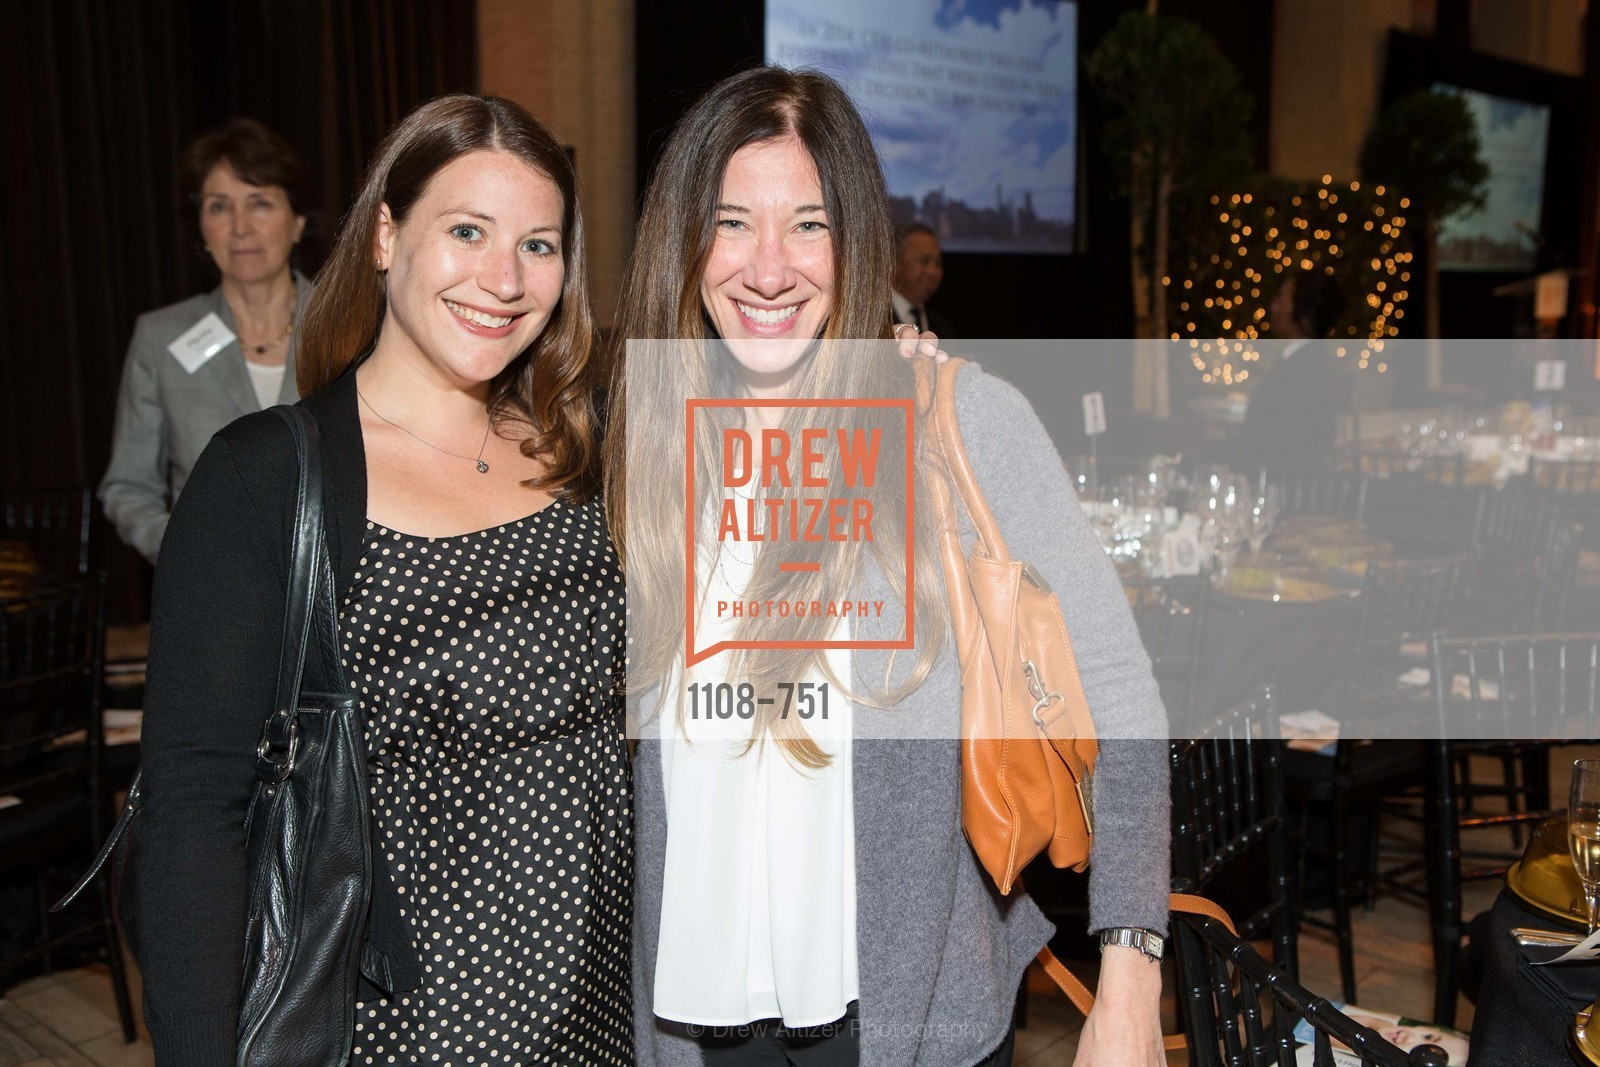 Abigail Blodgett, Donna Solem, CENTER FOR ENVIRONMENTAL HEALTH (CEH) 2015 Gala, Bently Reserve, May 28th, 2015,Drew Altizer, Drew Altizer Photography, full-service agency, private events, San Francisco photographer, photographer california